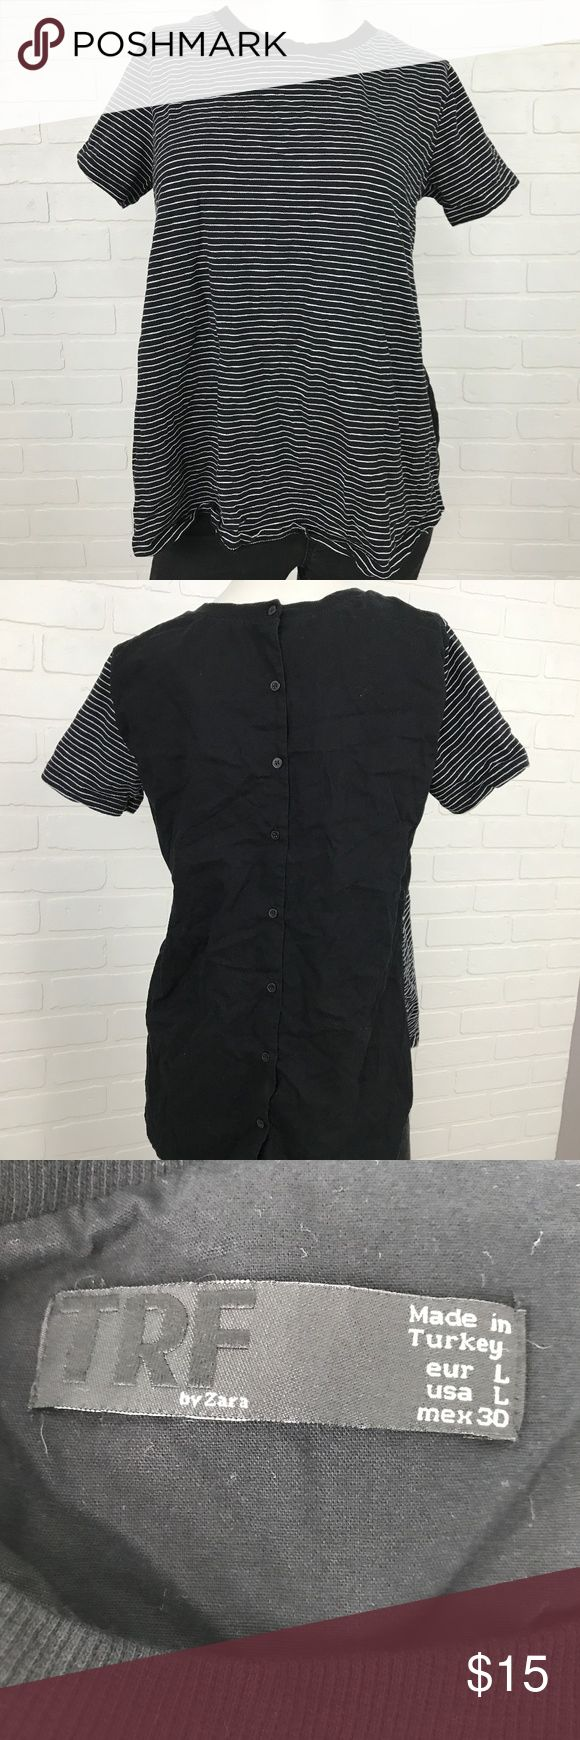 TRF by Zara Ladies Large Black White Stripes BRAND                    :TRF by Zara				 SIZE	                 :Ladies Large	 STYLE	                 :Shirt COLOR	                 :Black - White		 Condition               :Gently Worn	 Inventory                :MQ114 B5 TRF by Zara Tops Tees - Short Sleeve